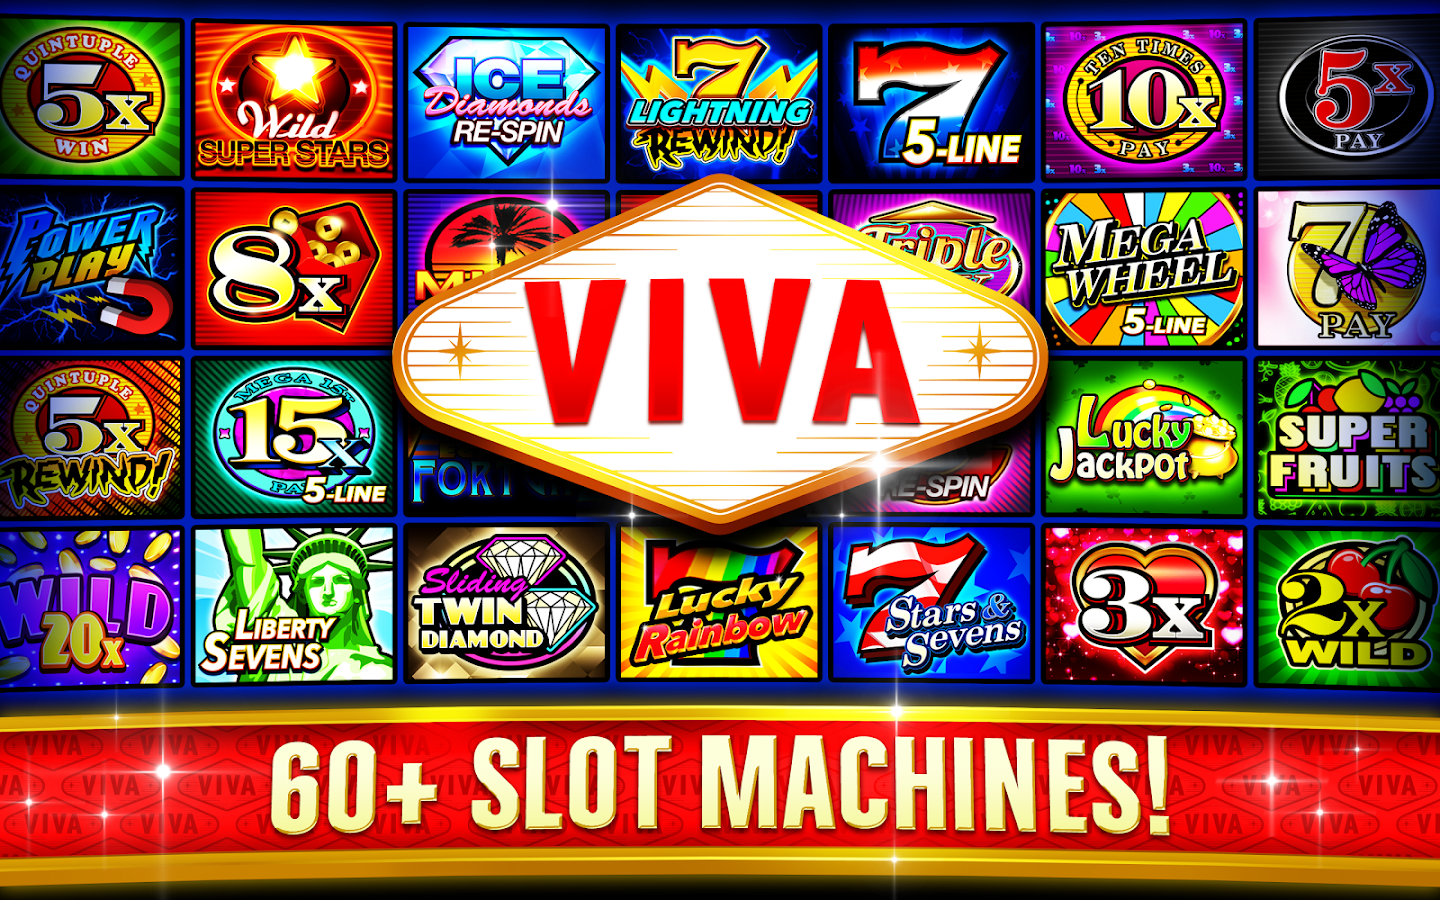 Jackpot 20,000 Slots - Play for Free With No Download